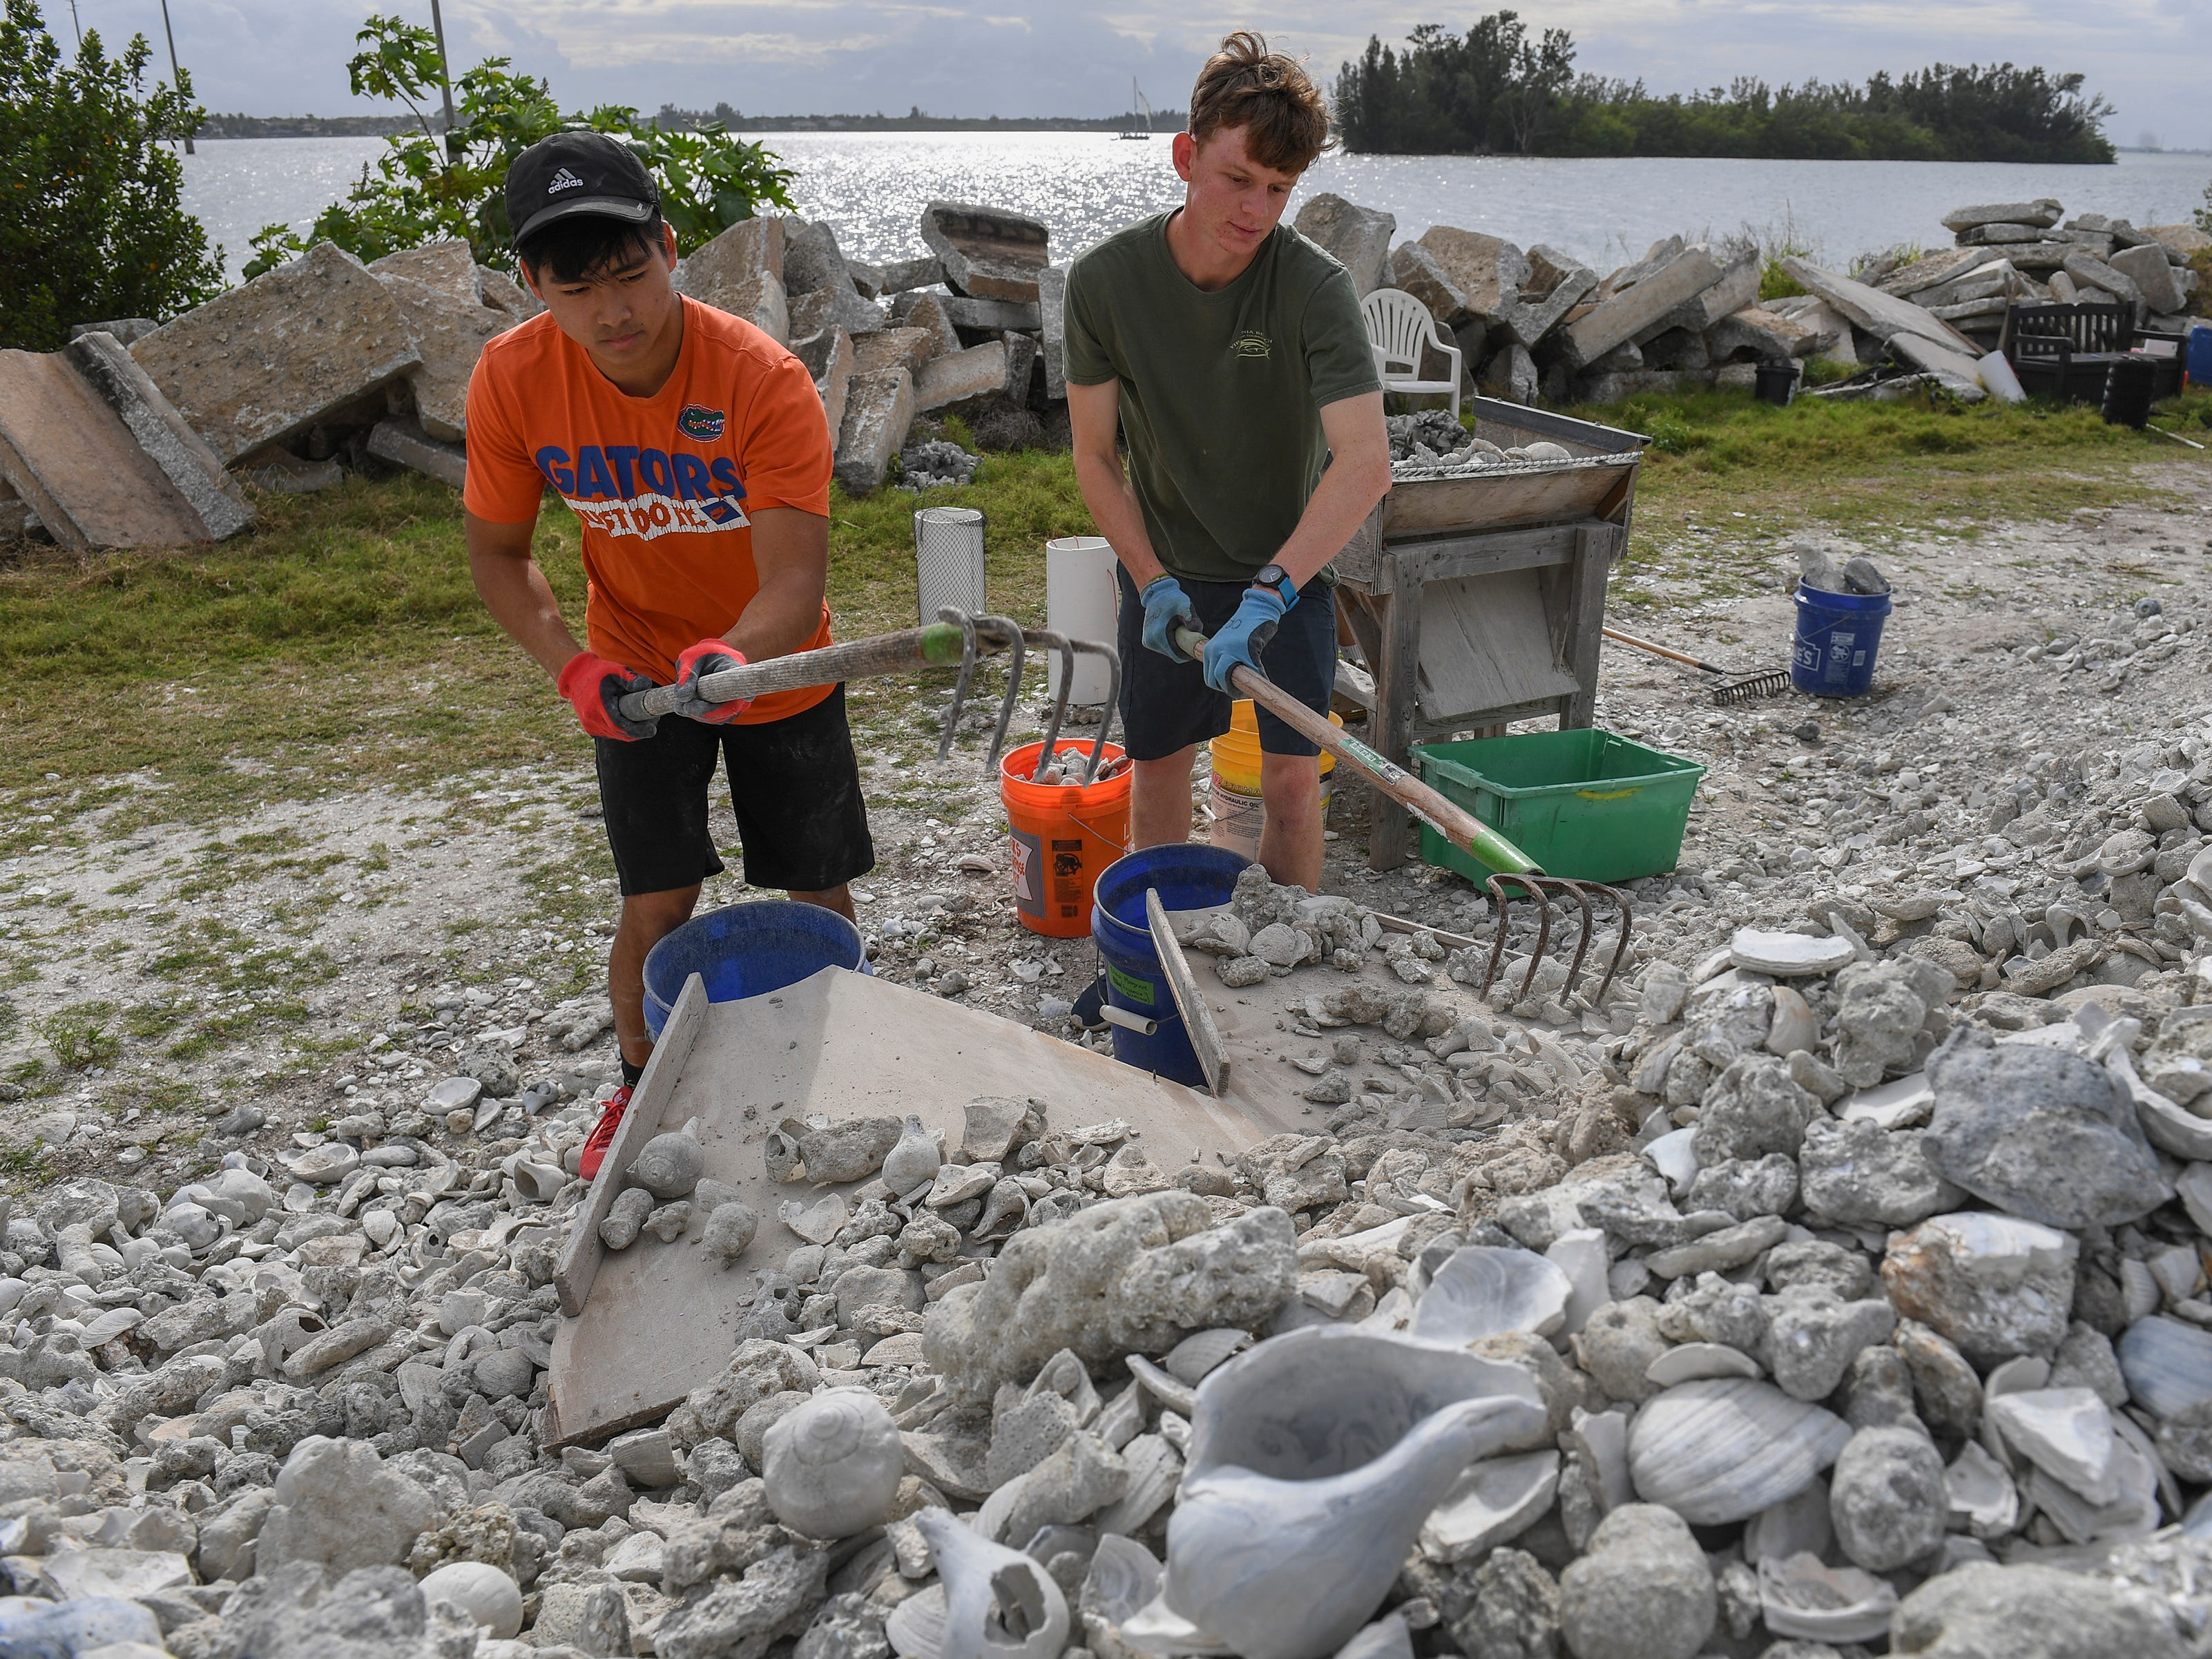 """Vero Beach High School seniors (from left) Chris In, 17, and Logan Votzi, 18, volunteer during spring break, to help make shell bags, on Monday, March 18, 2019, along the shore of the Indian River Lagoon at the southwest corner of the 17th Street Alma Lee Loy Bridge behind the water treatment plant, during the Ocean Research & Conservation Association's (ORCA) shell bagging day for the Living Lagoon Program. The program is about actively restoring the Indian River Lagoon through habitat restoration and education. The shell bags are used to make breakwaters offshore from areas impacted by wave erosion in Indian River County. """"I got to this through Harbor Branch, I was an intern there and they were talking about this, how they put these [shell bags] off [shore] to counteract all the wake coming in from the channels,"""" Votzi said. """"It's just to help the onshore nurseries, blocking the erosion."""" The project is funded with an Indian River County Impact 100 grant, to be completed by the end of May. Volunteering opportunities for the program happen several time a month. Information on how to volunteer can be found at www.teamorca.com."""